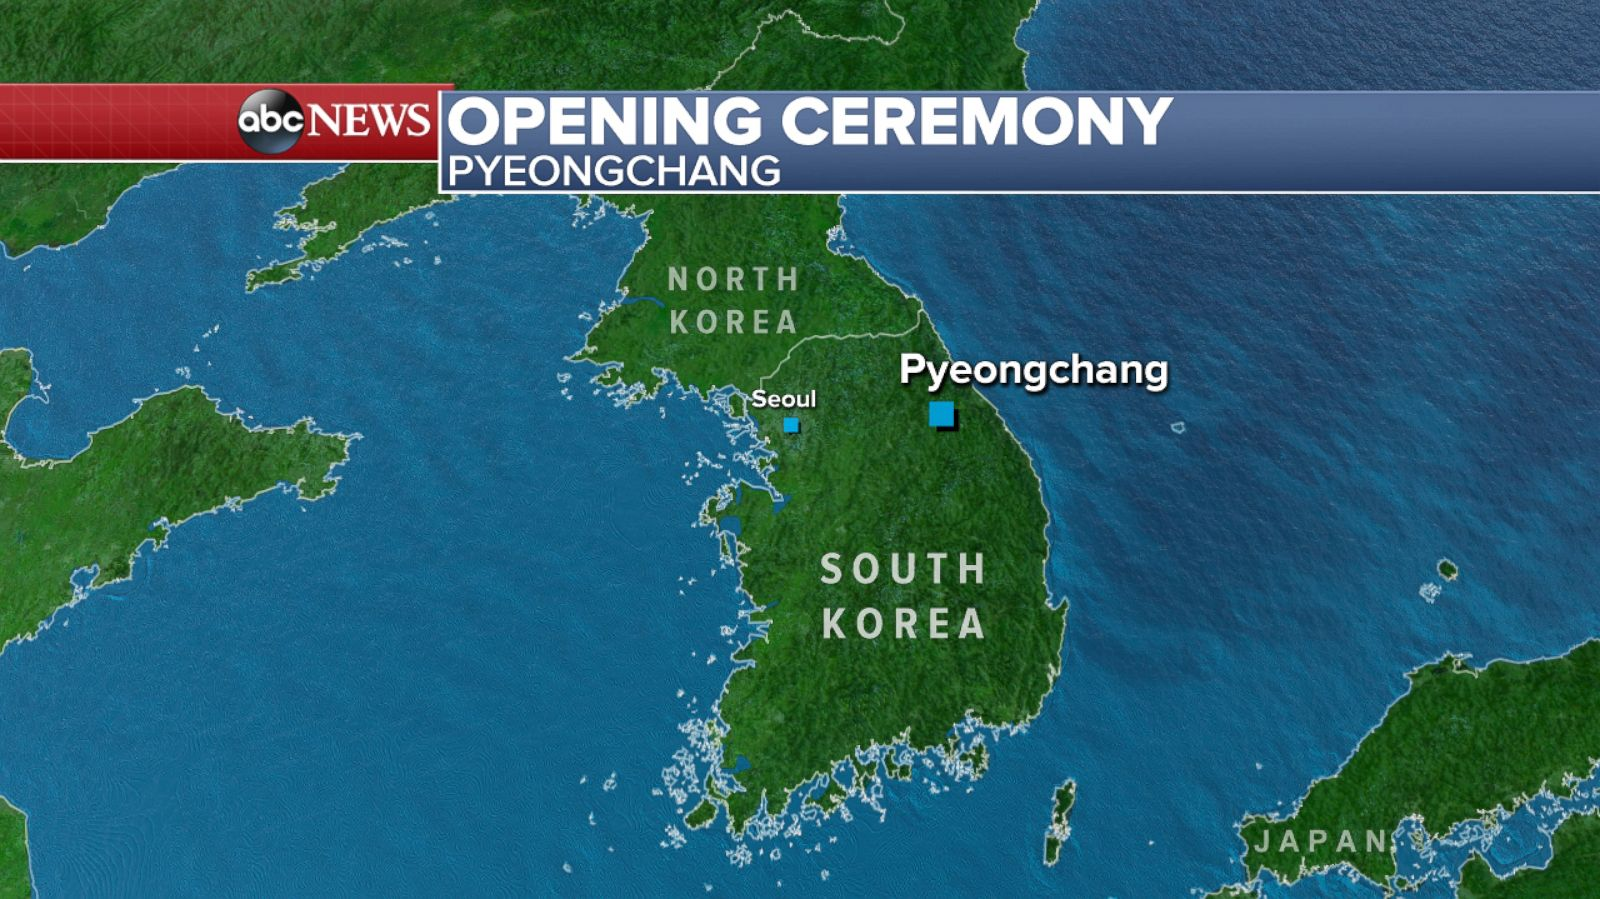 Chilly temps expected for Olympics opening ceremony in Pyeongchang on